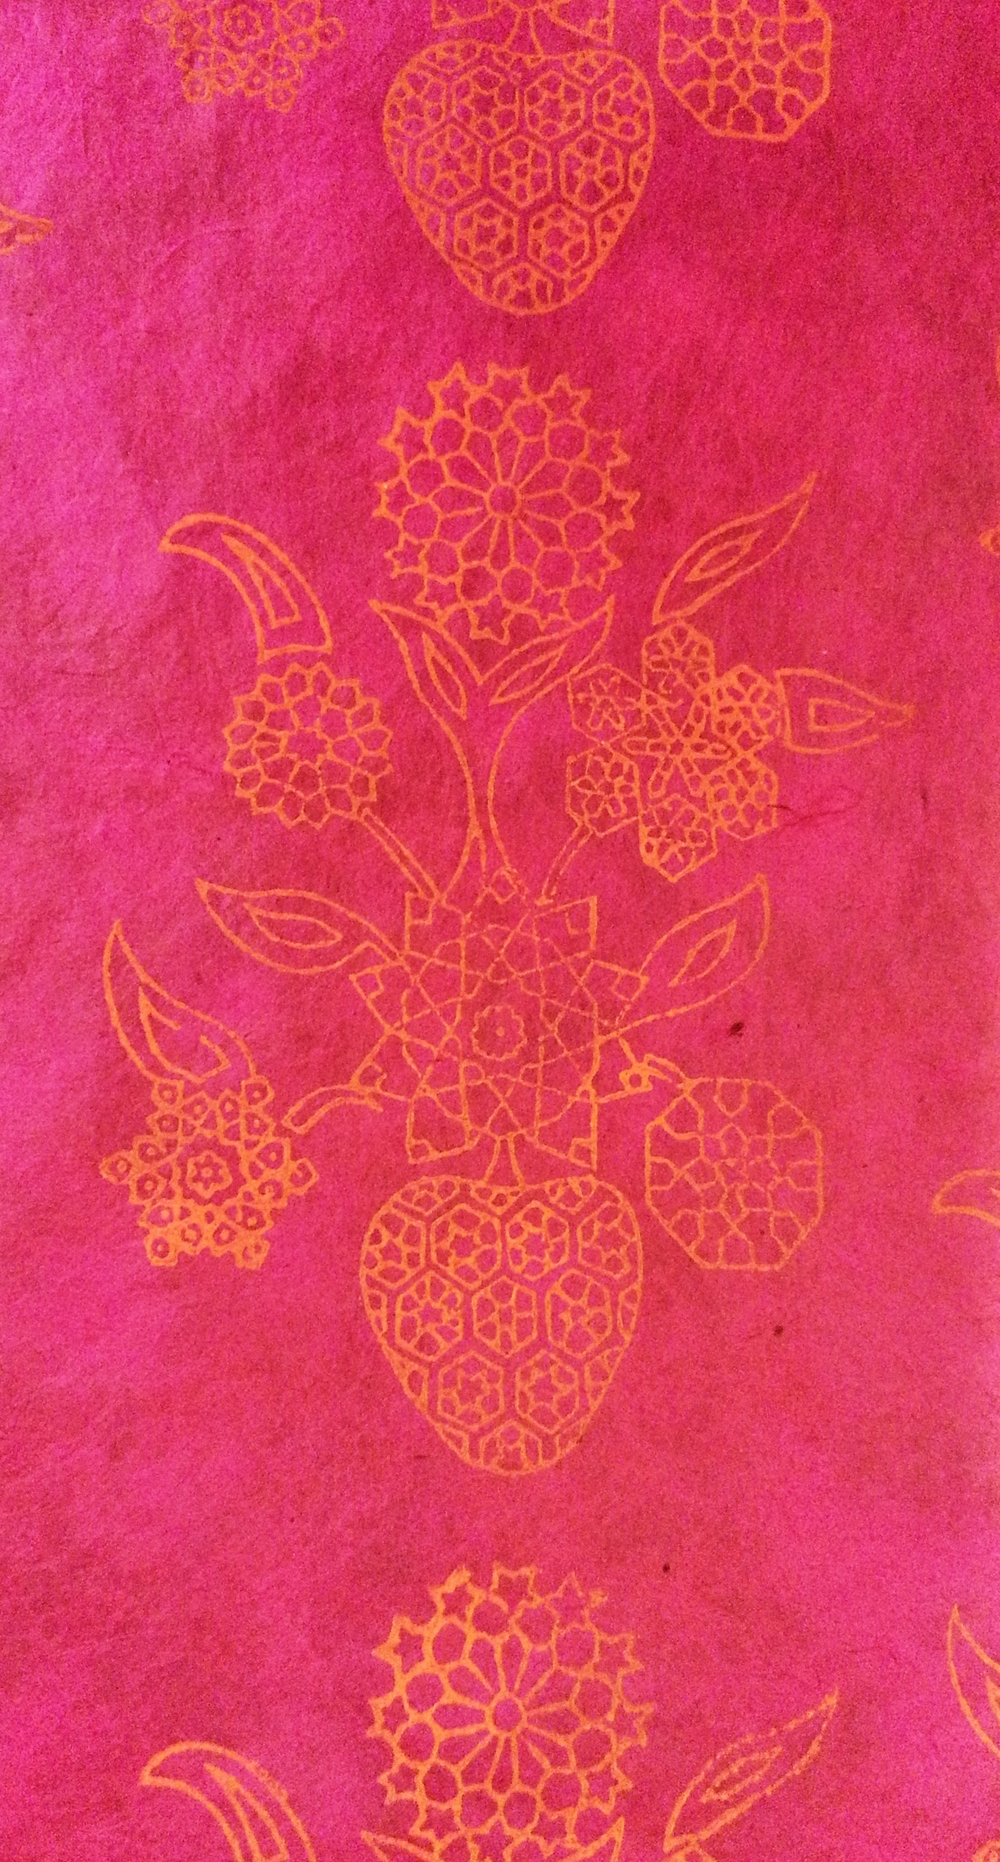 Geometric Flower ~ Mughal Art, Indian Art, Islamic Art